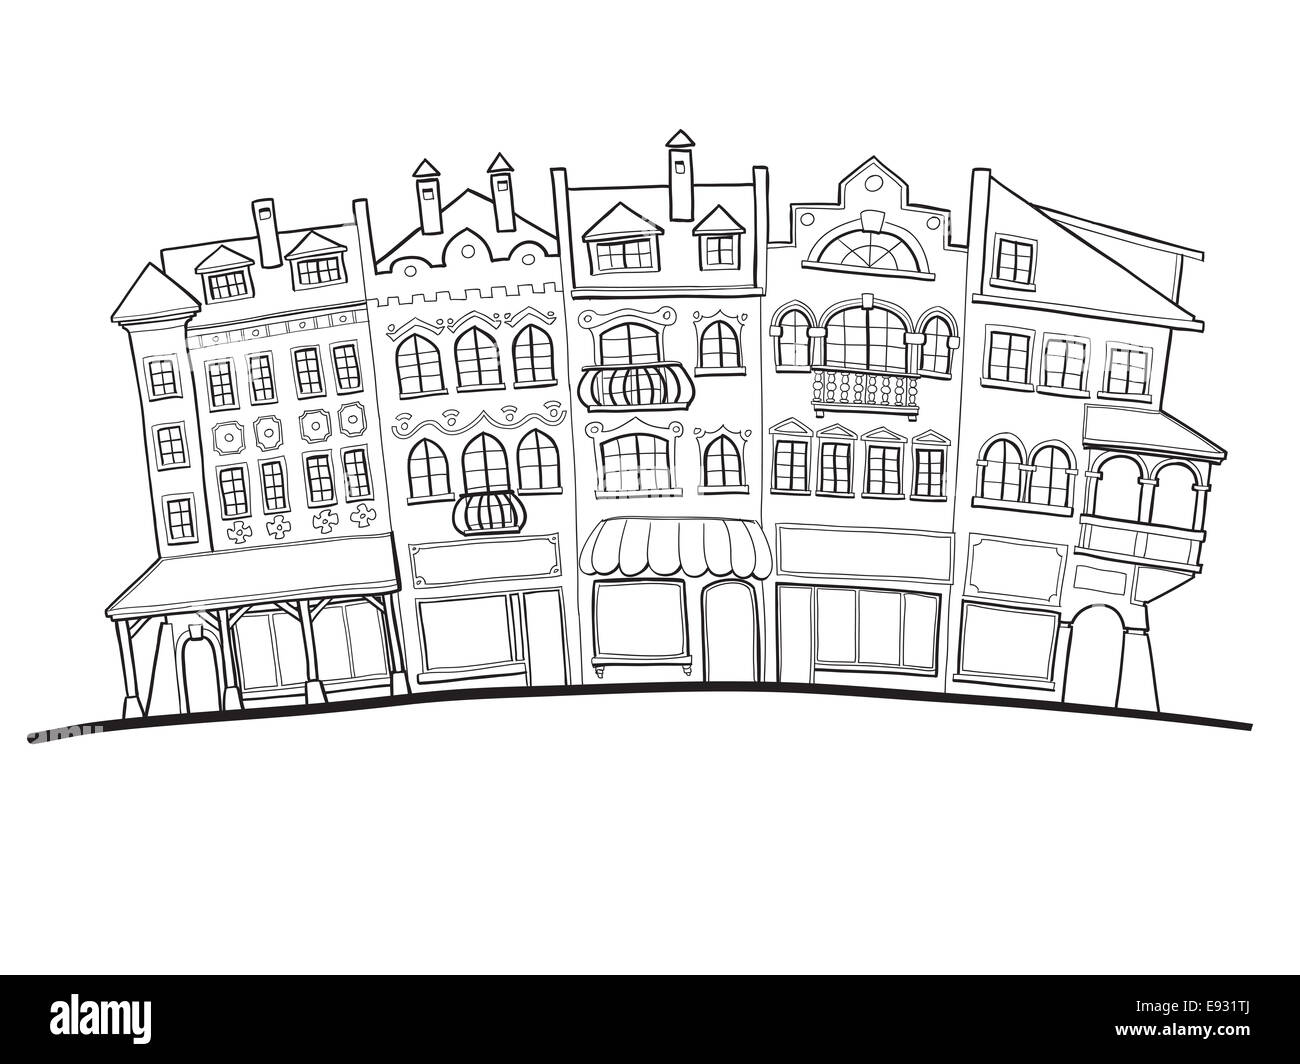 drawing of old city street facades houses and shops stock photo